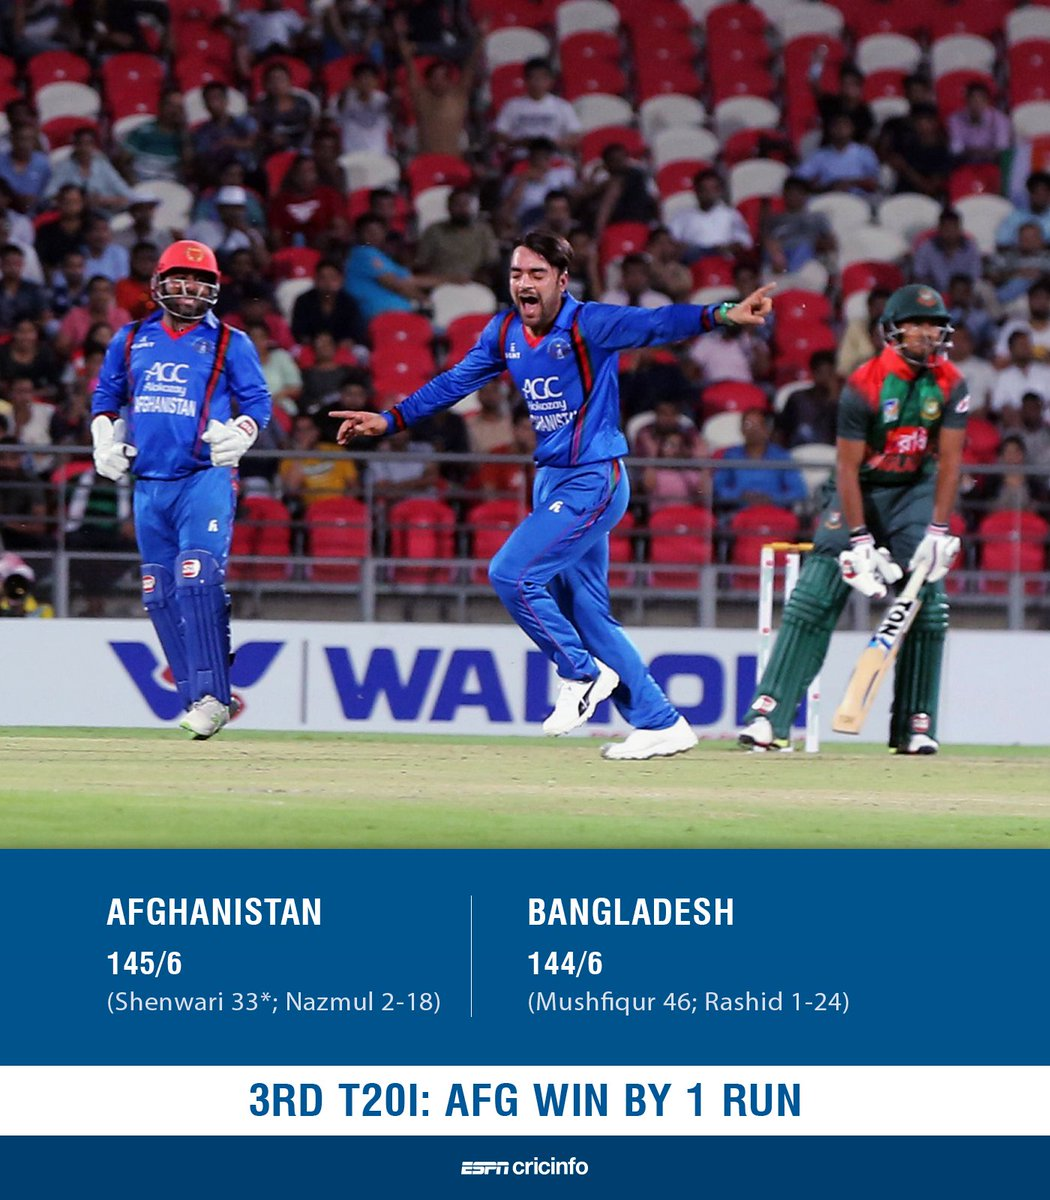 You all deserve a big Thank You for bringing smiles and being the reason to cherish the moment. #AFGvsBAN @ACBofficials #Afg - Congratulations for winning the series.